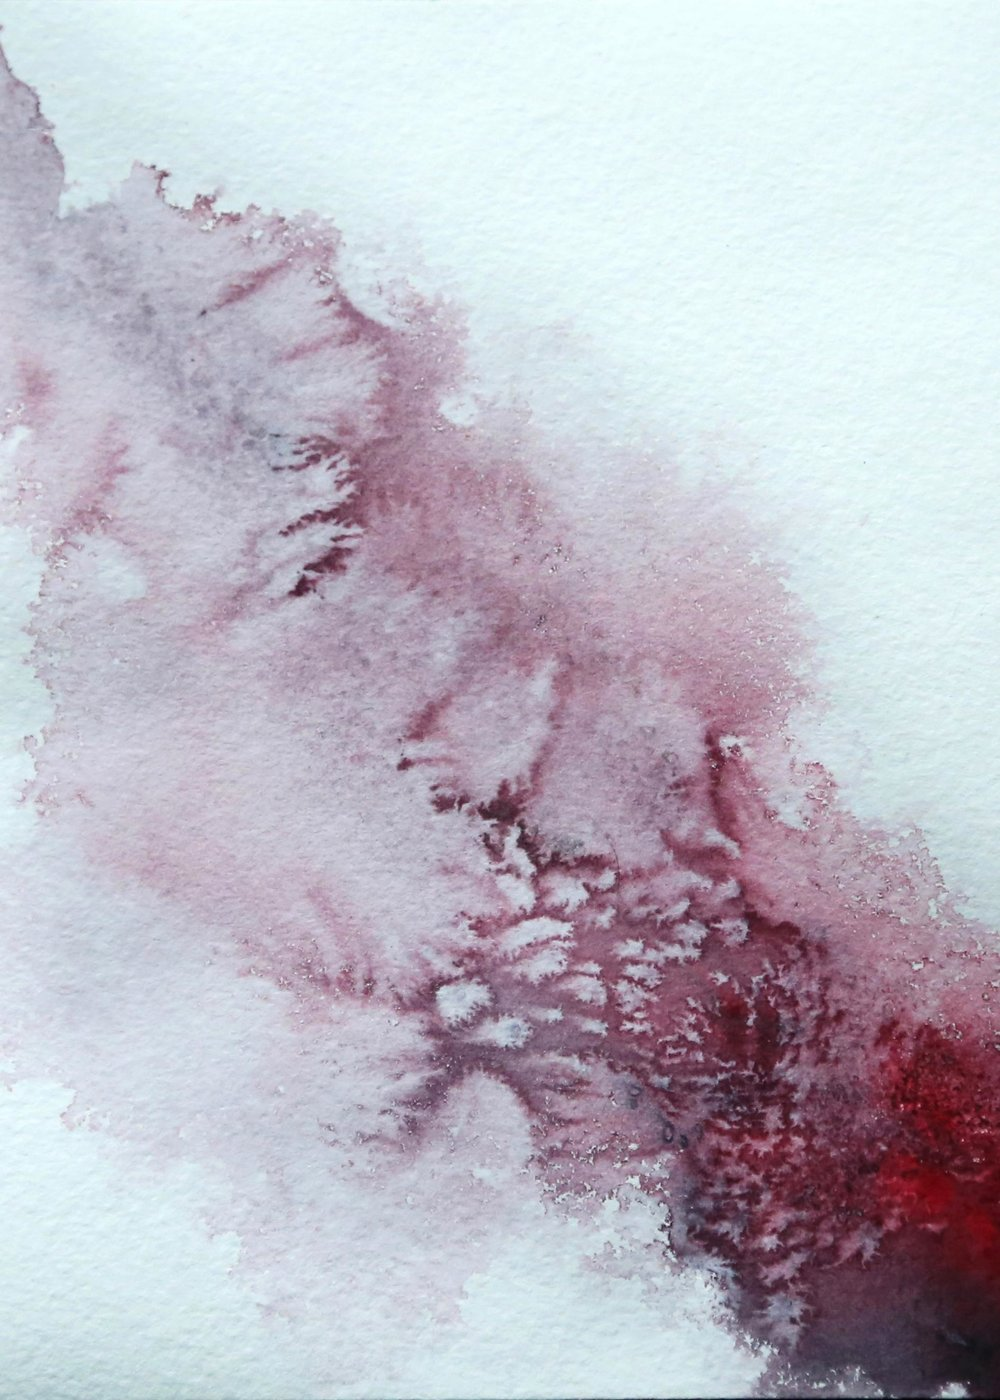 Underworld-Otherworld, 2015. Watercolor on Paper, 6x8